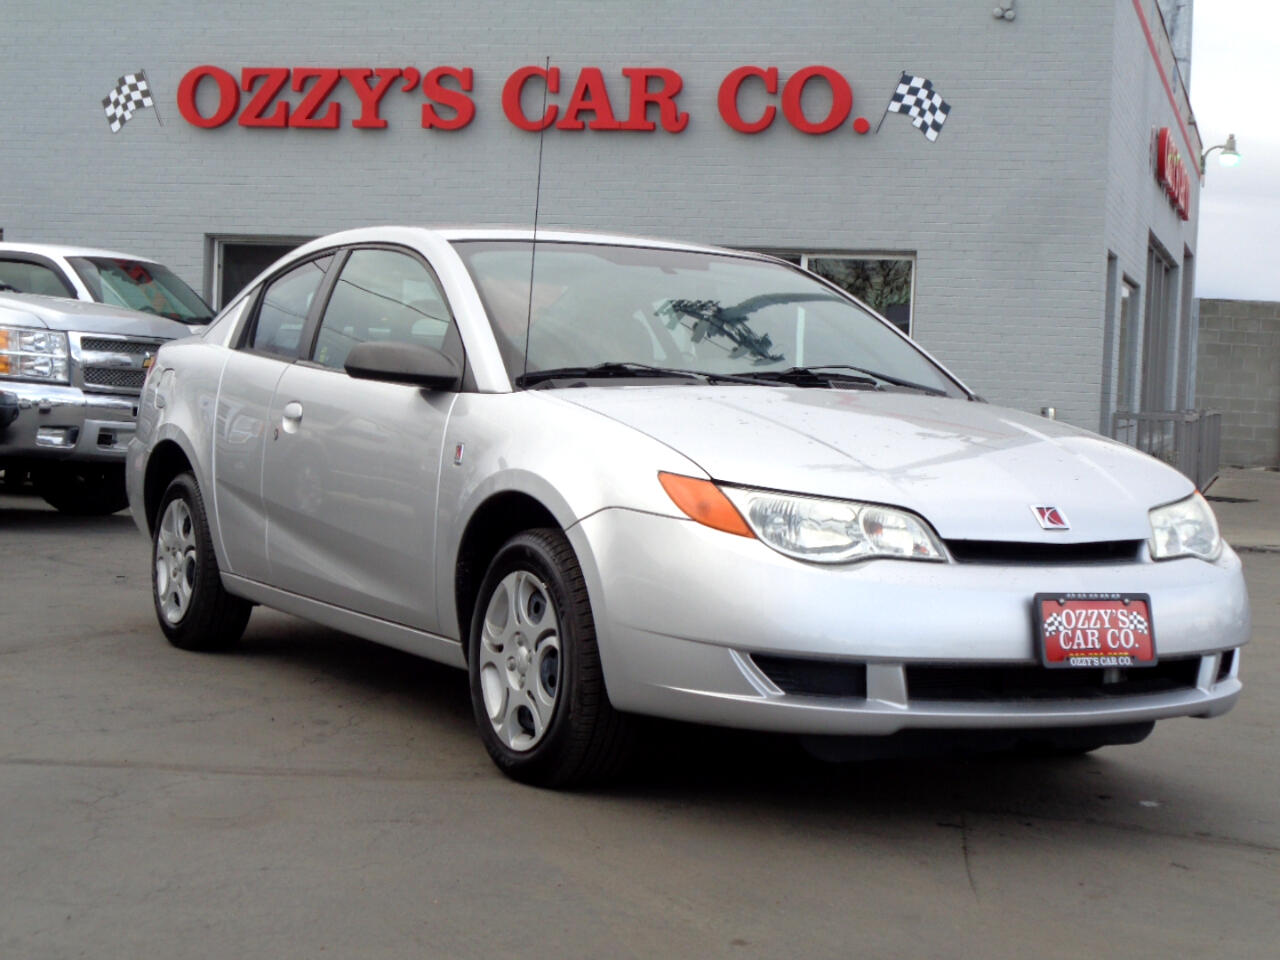 2005 Saturn ION ION 2 Quad Cpe Auto